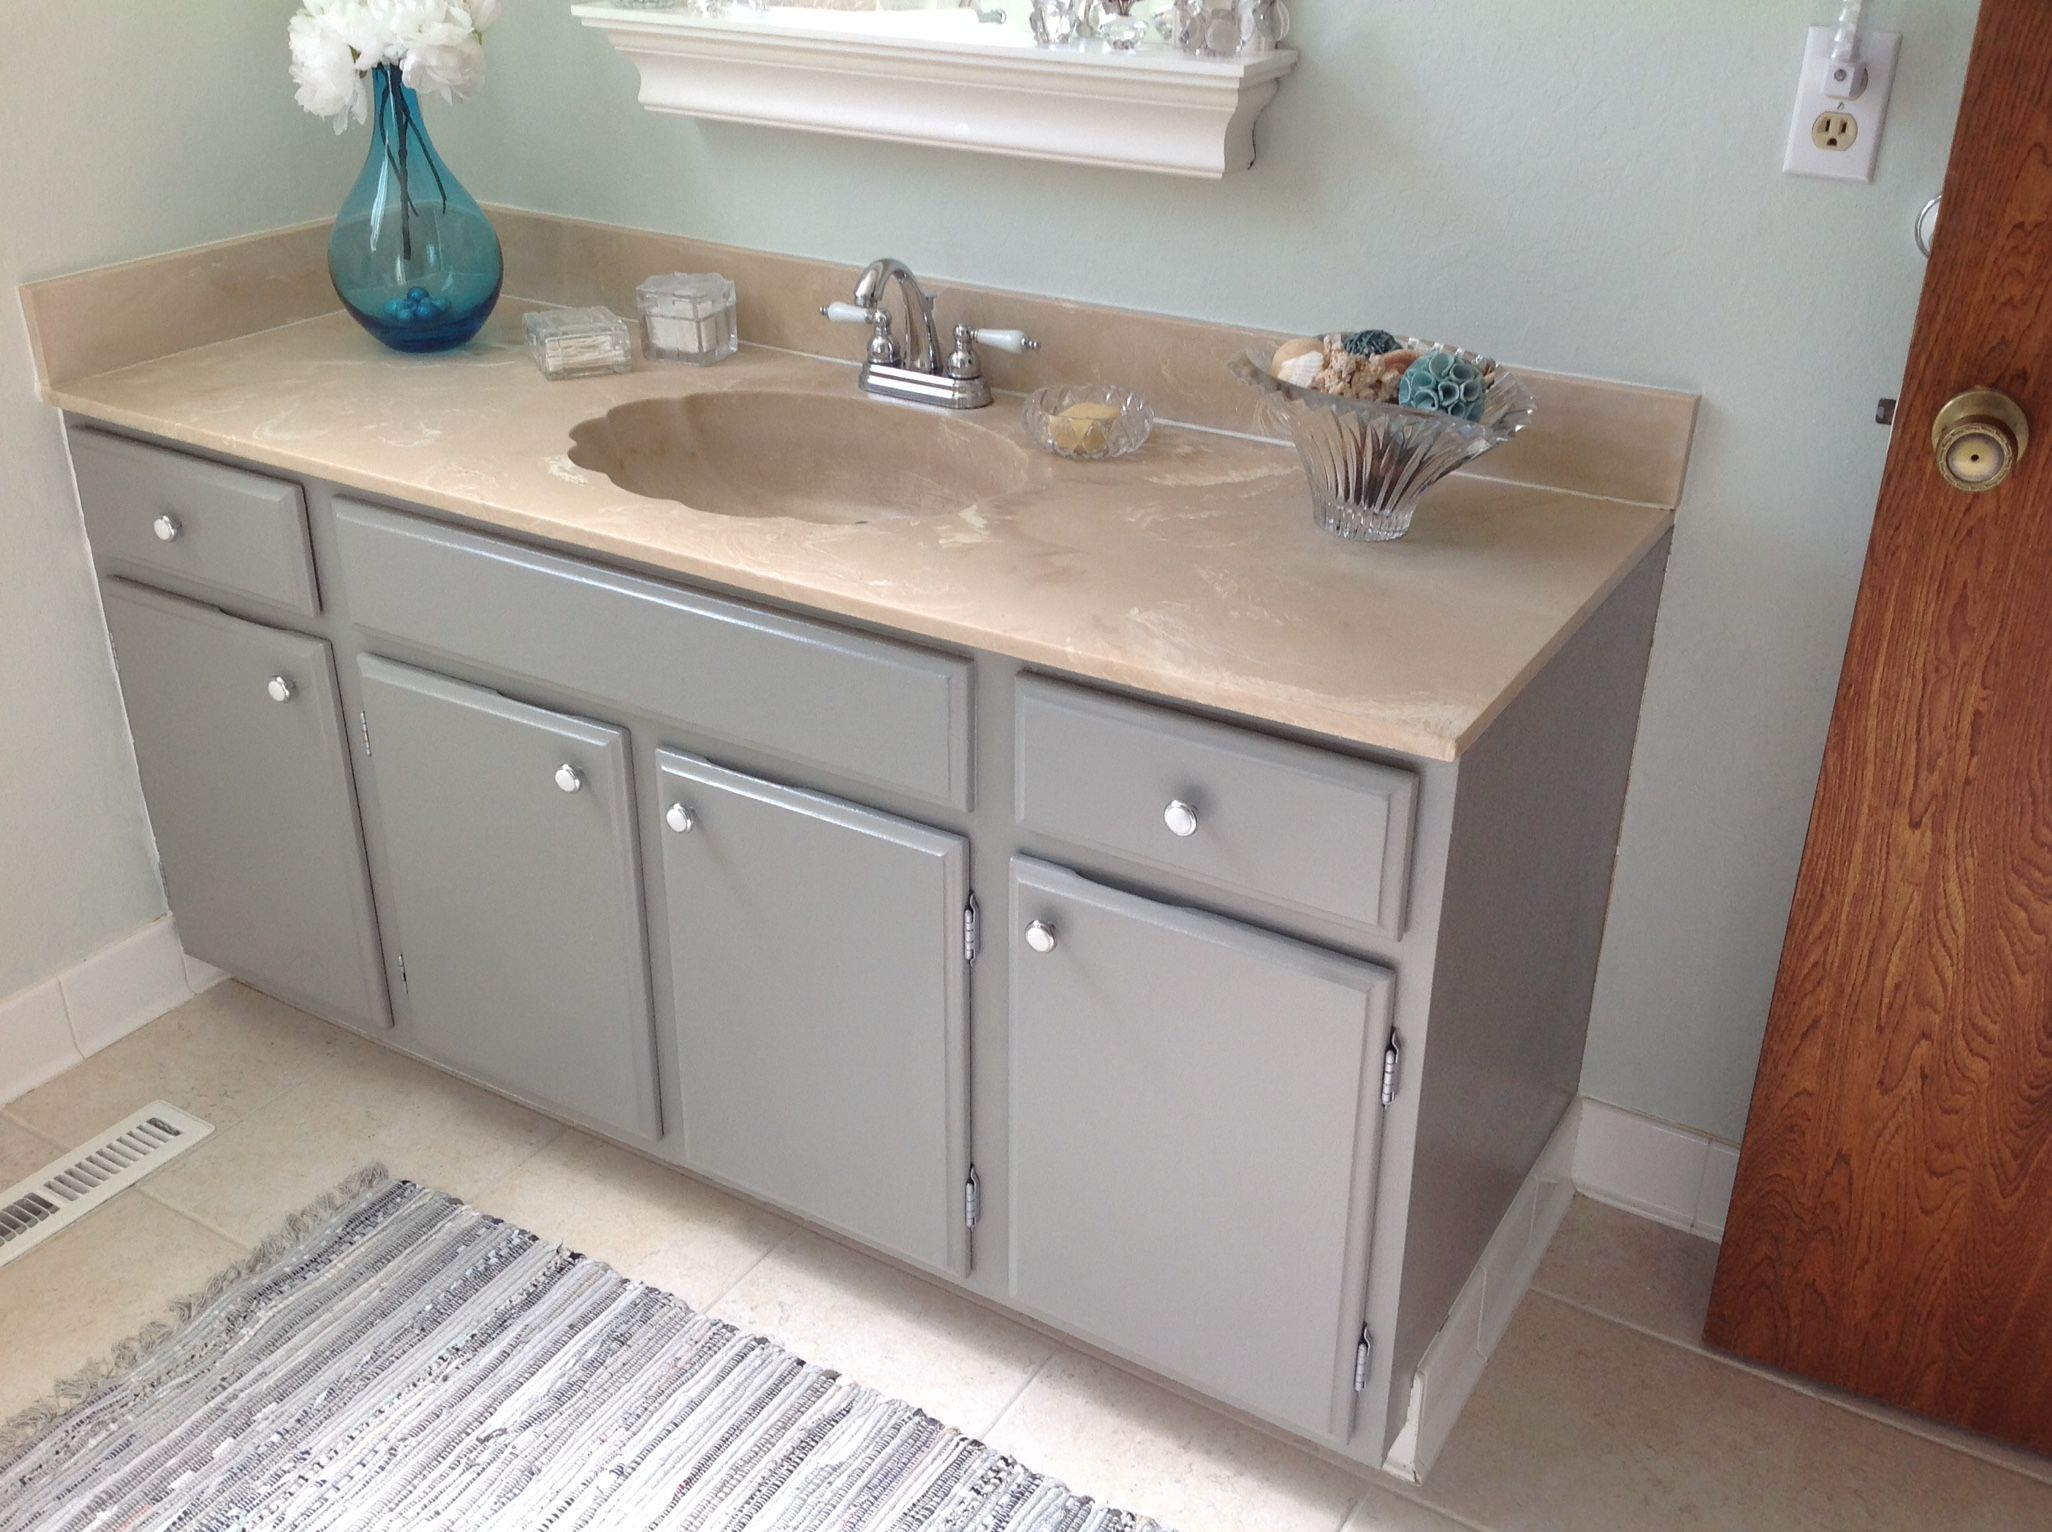 Valspar Tabby Cat Gray Update Cabinets Built In Cabinets Bathroom Update